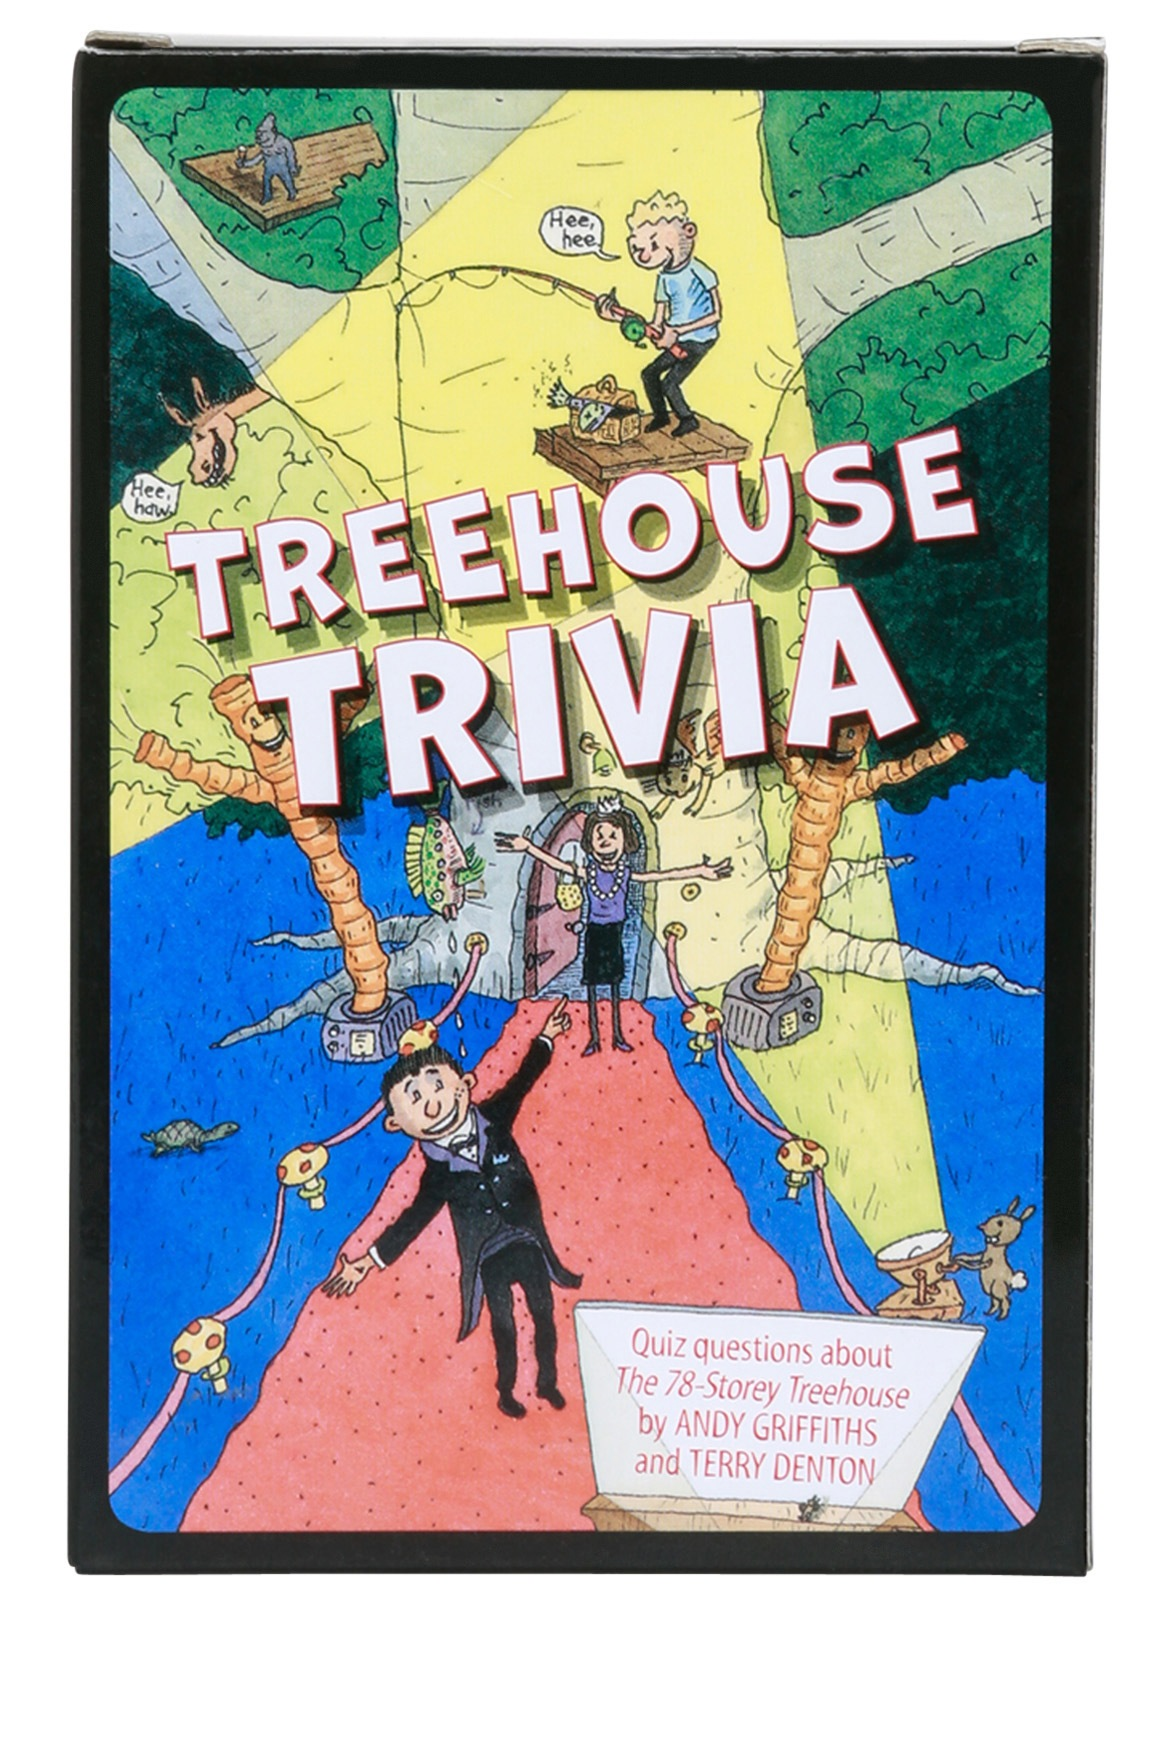 Andy Griffiths Treehouse Part - 48: | Treehouse Trivia Cards: The 78-Storey Treehouse By Andy Griffiths U0026 Terry  Dentonby Andy Griffiths U0026 Terry Denton | Myer Online